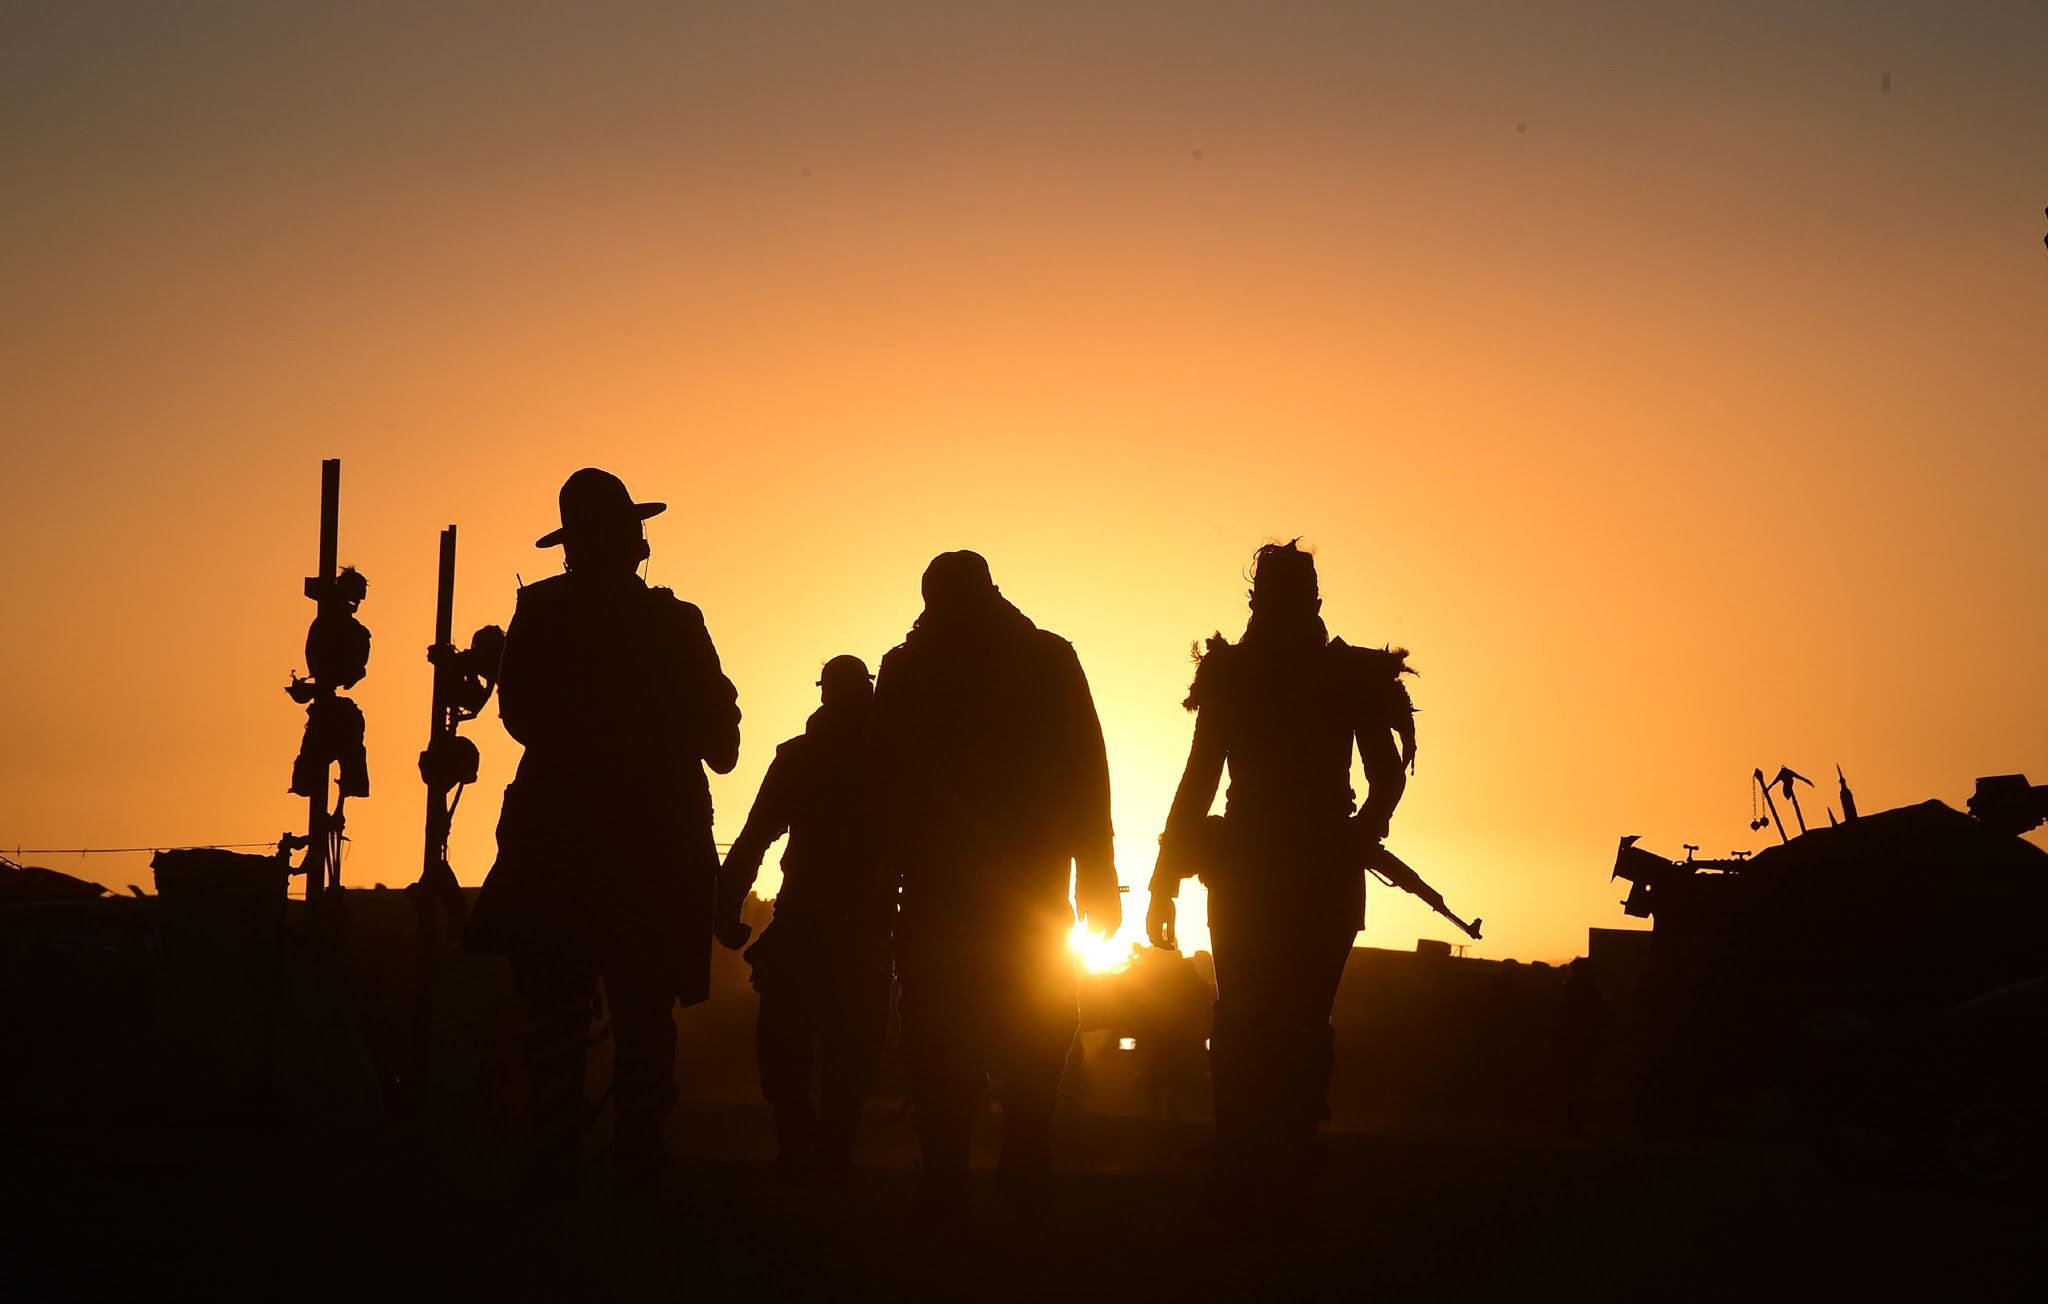 Festival goers arriving at sunset attend the first day of Wasteland Weekend in the high desert community of California City in the Mojave Desert, California, where people are gathering for the world's largest post-apocalyptic festival